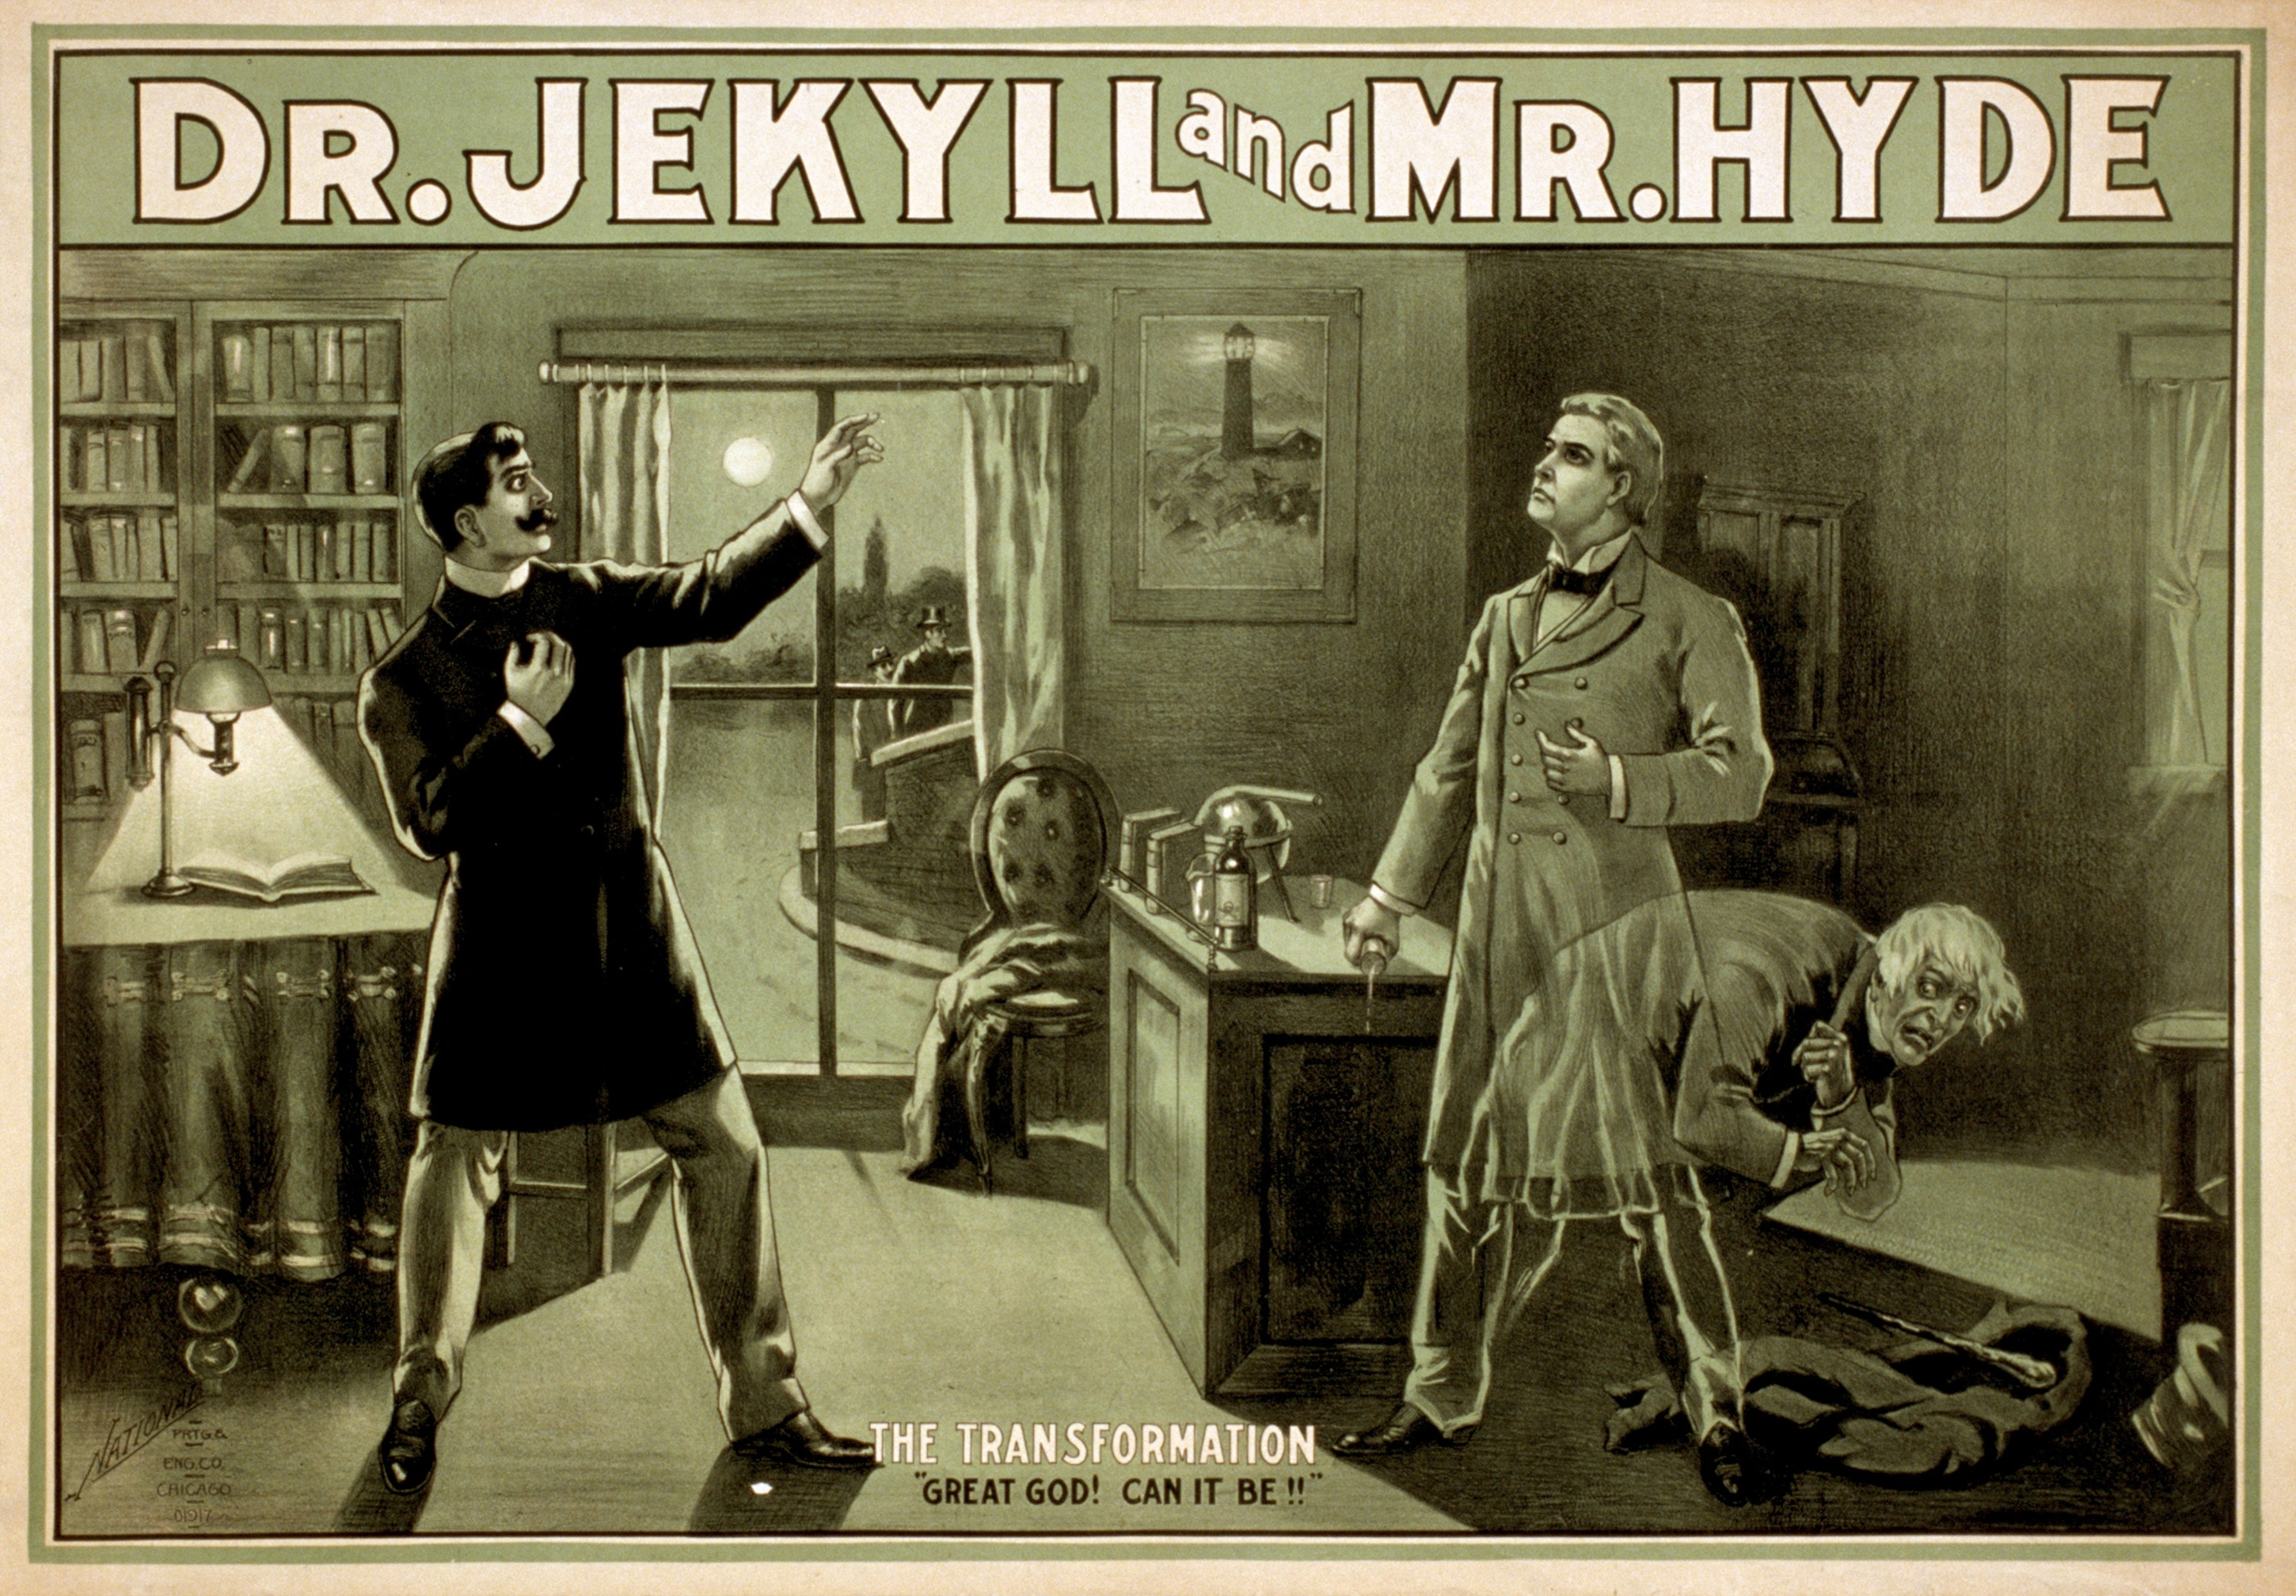 an analysis of evil in the strange case of dr jekyll and mr hyde by robert louis stevenson A study in dualism: the strange case of dr jekyll and mr hyde  robert balfour louis stevenson was a scottish novelist,  stevenson creates in dr jekyll and mr hyde, two equipotent,.